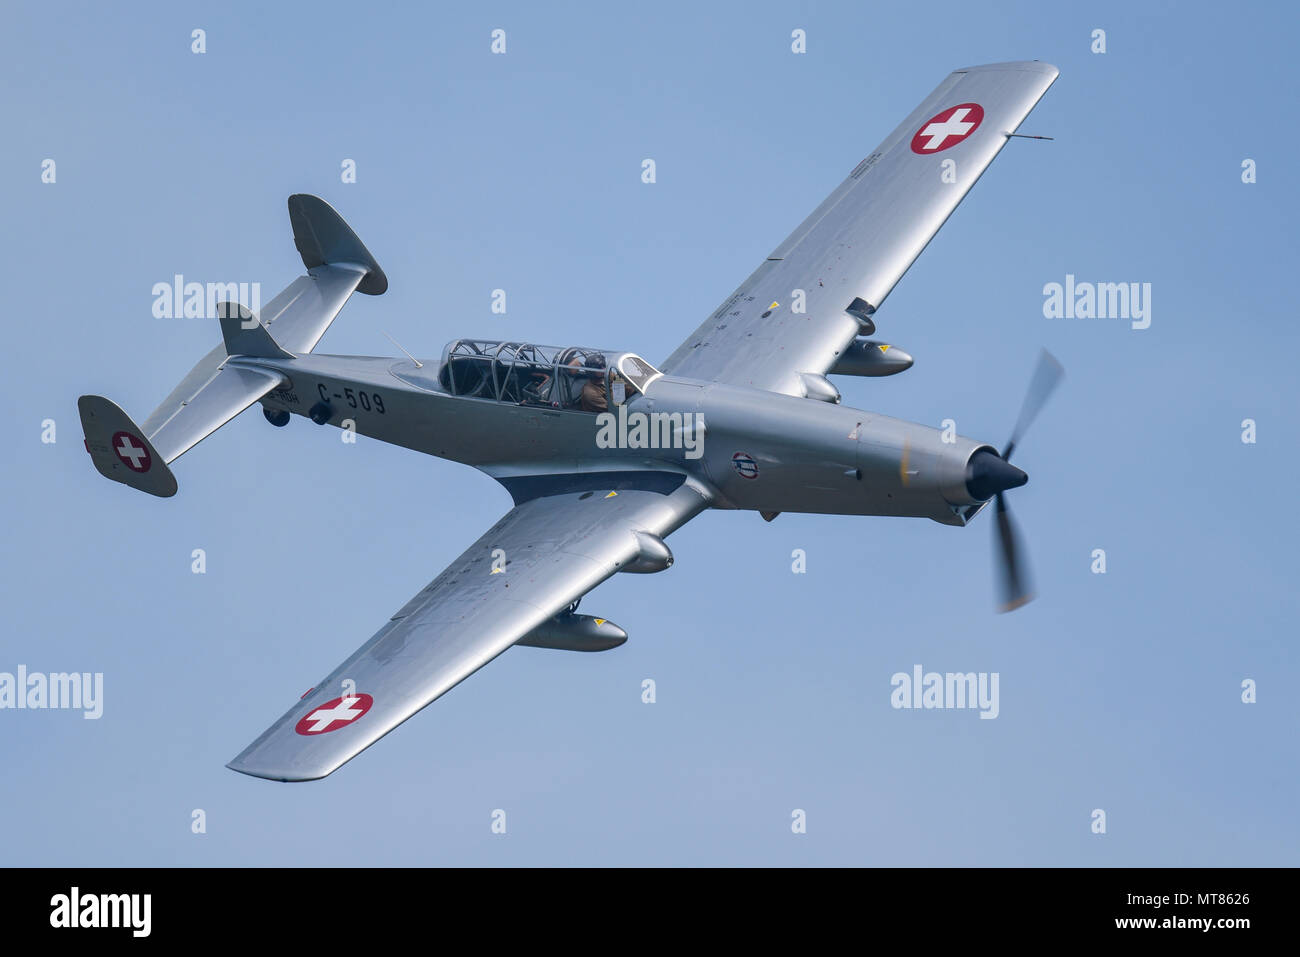 farner-werke-fw-c-3605-nicknamed-schlepp-tug-or-alpine-anteater-flying-at-an-airshow-in-blue-sky-ex-swiss-air-force-operated-by-46-aviation-MT8626.jpg